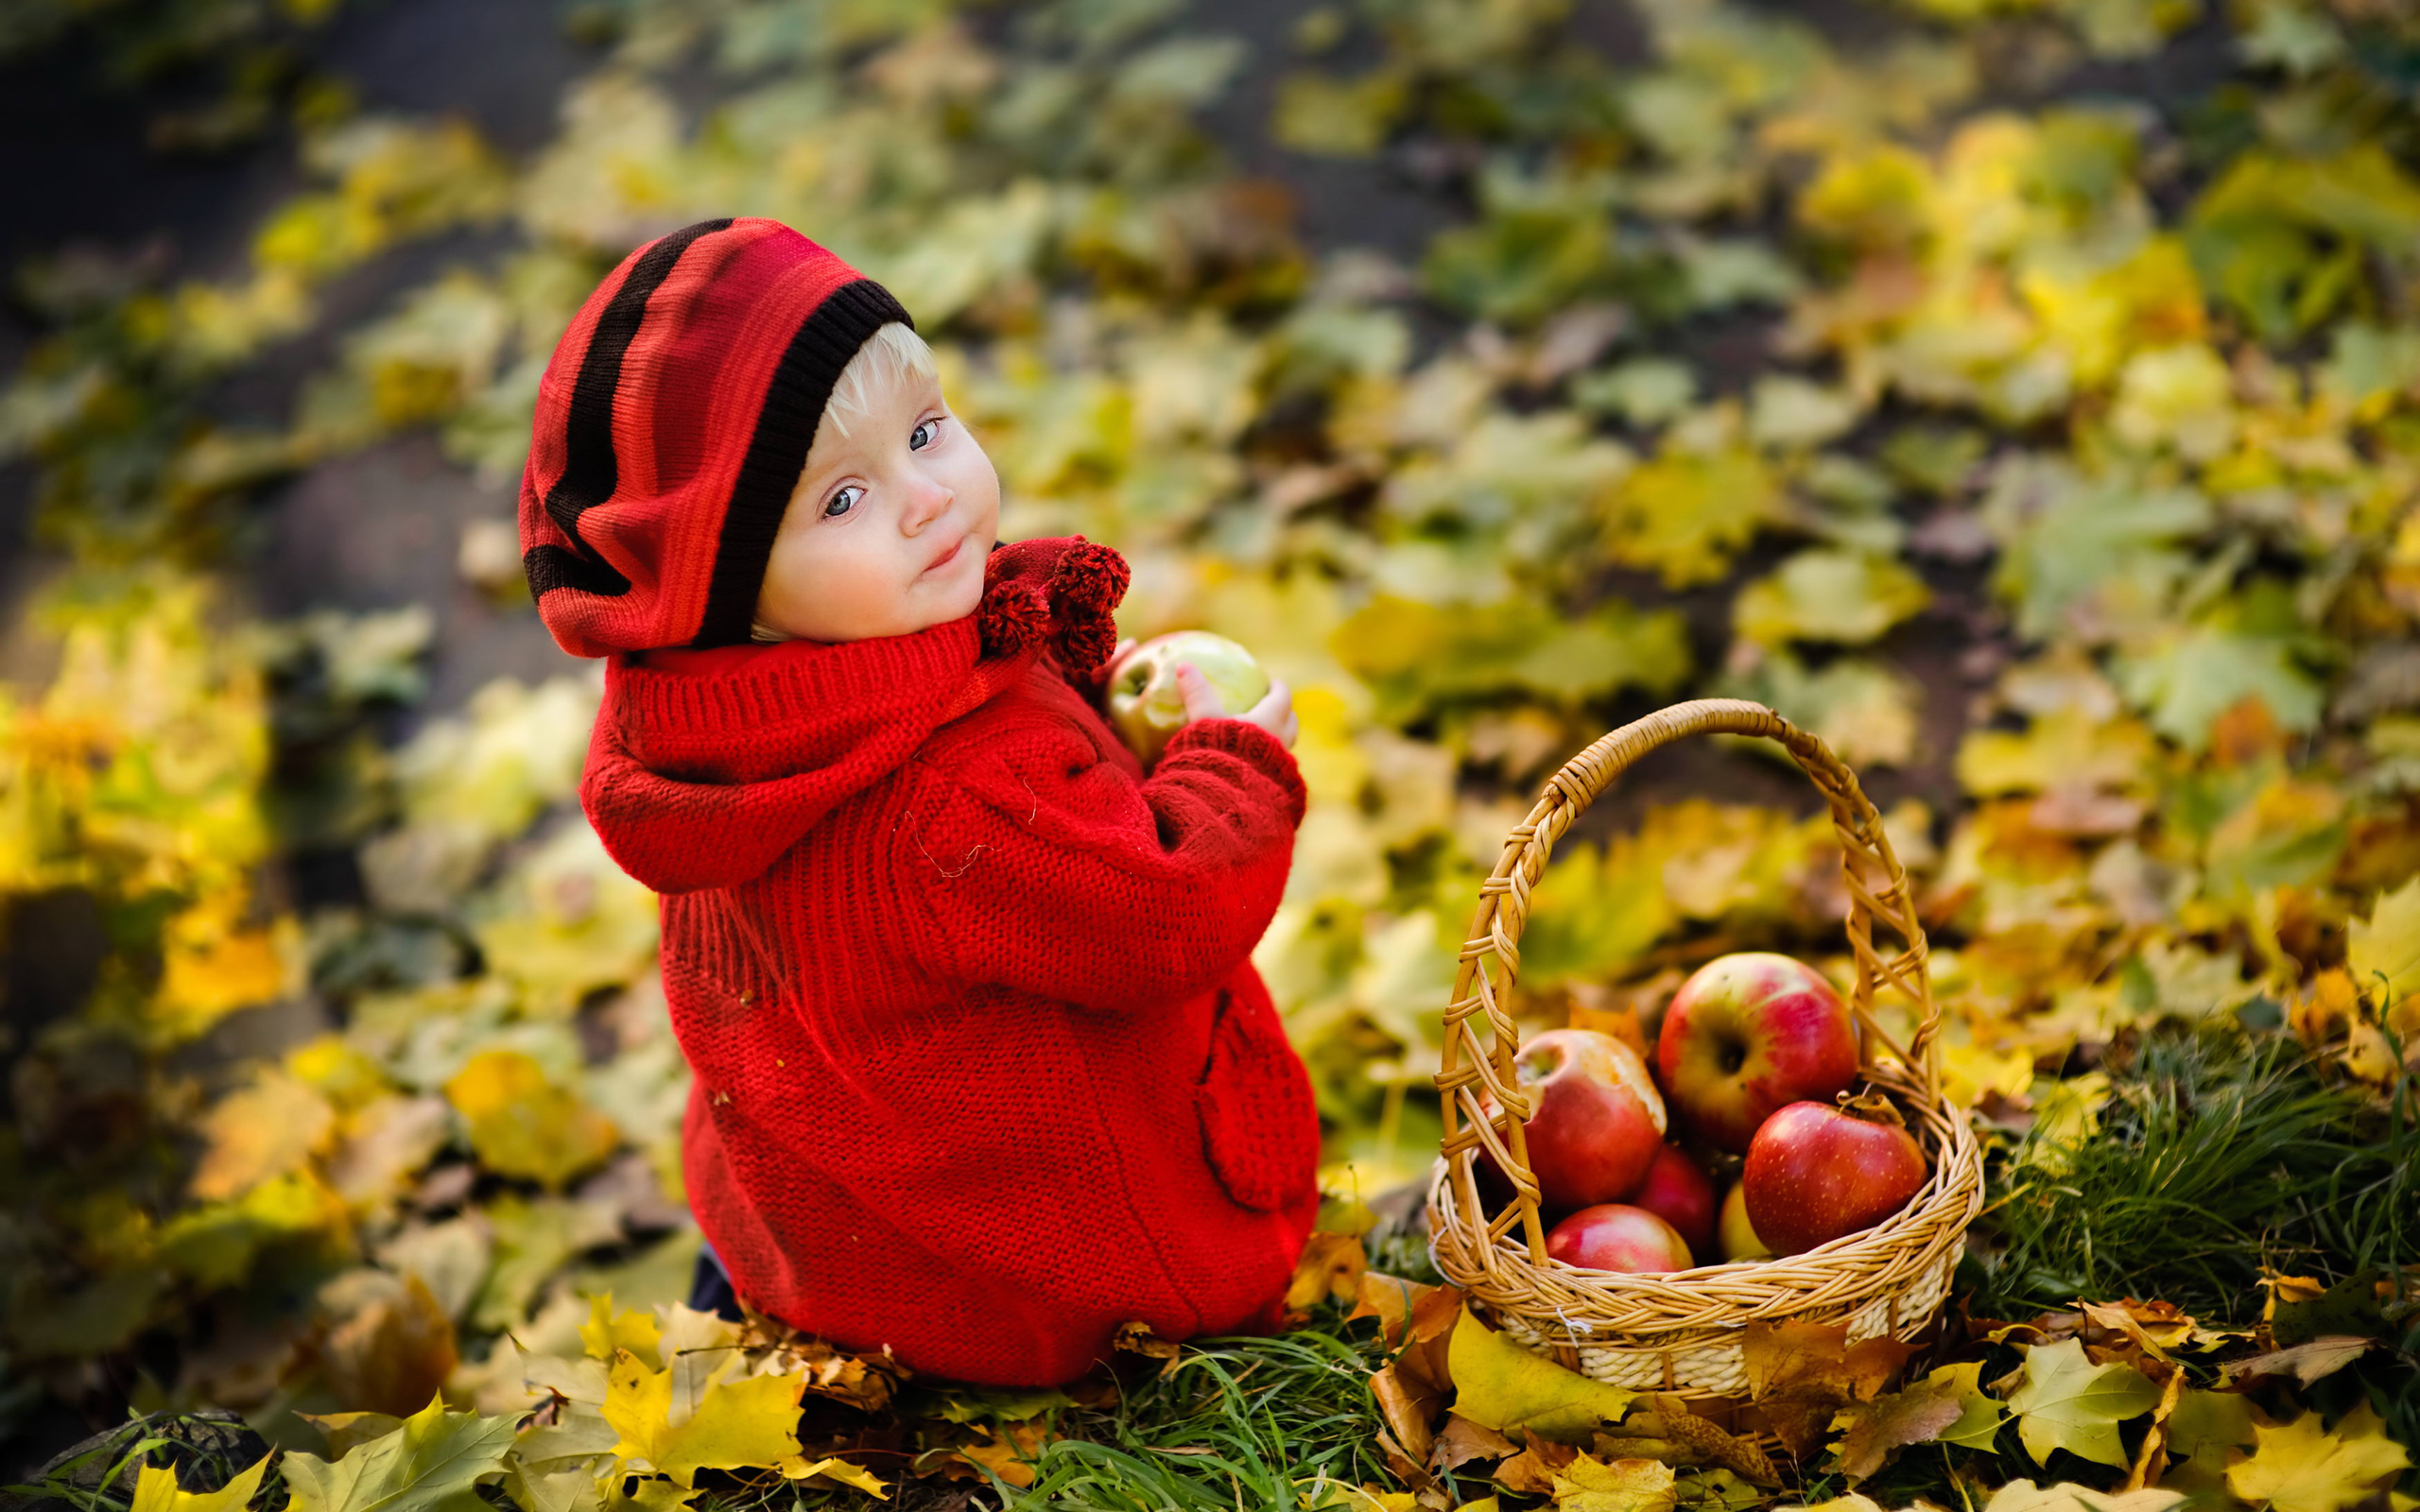 859 child hd wallpapers background images wallpaper abyss hd wallpaper background image id369016 2560x1600 photography child altavistaventures Choice Image